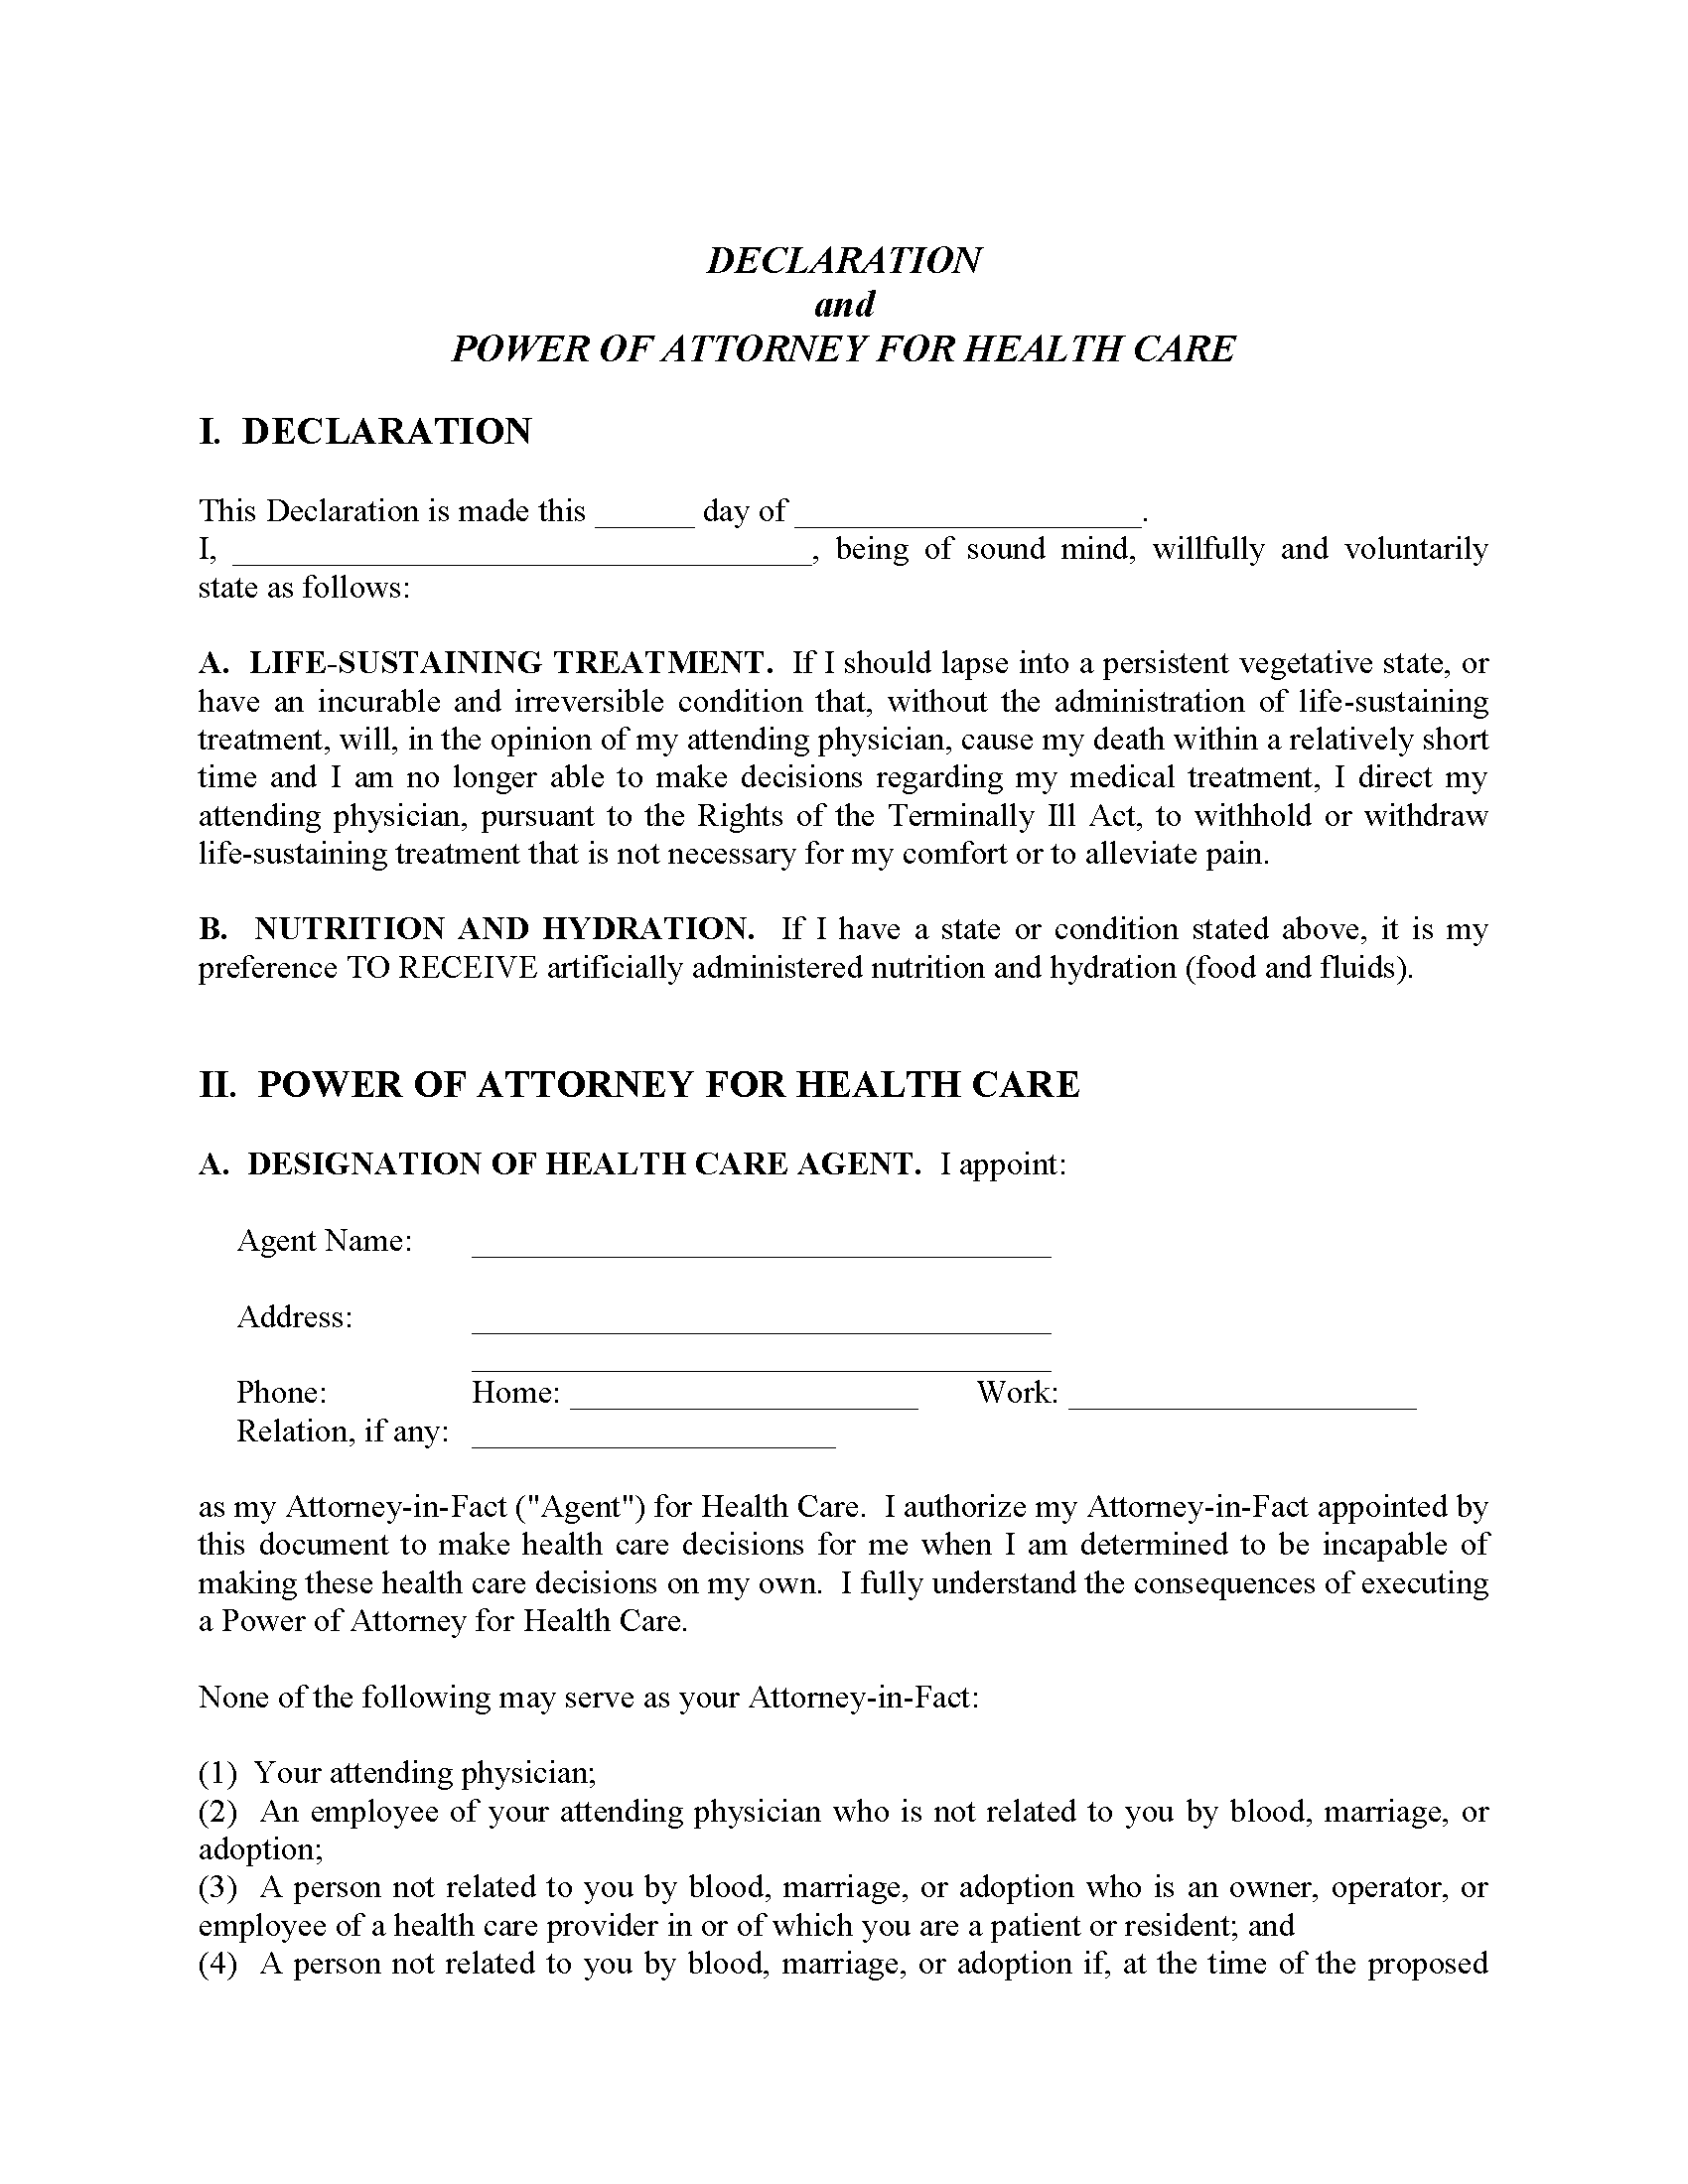 Minnesota Living Will Form Free Printable Legal Forms